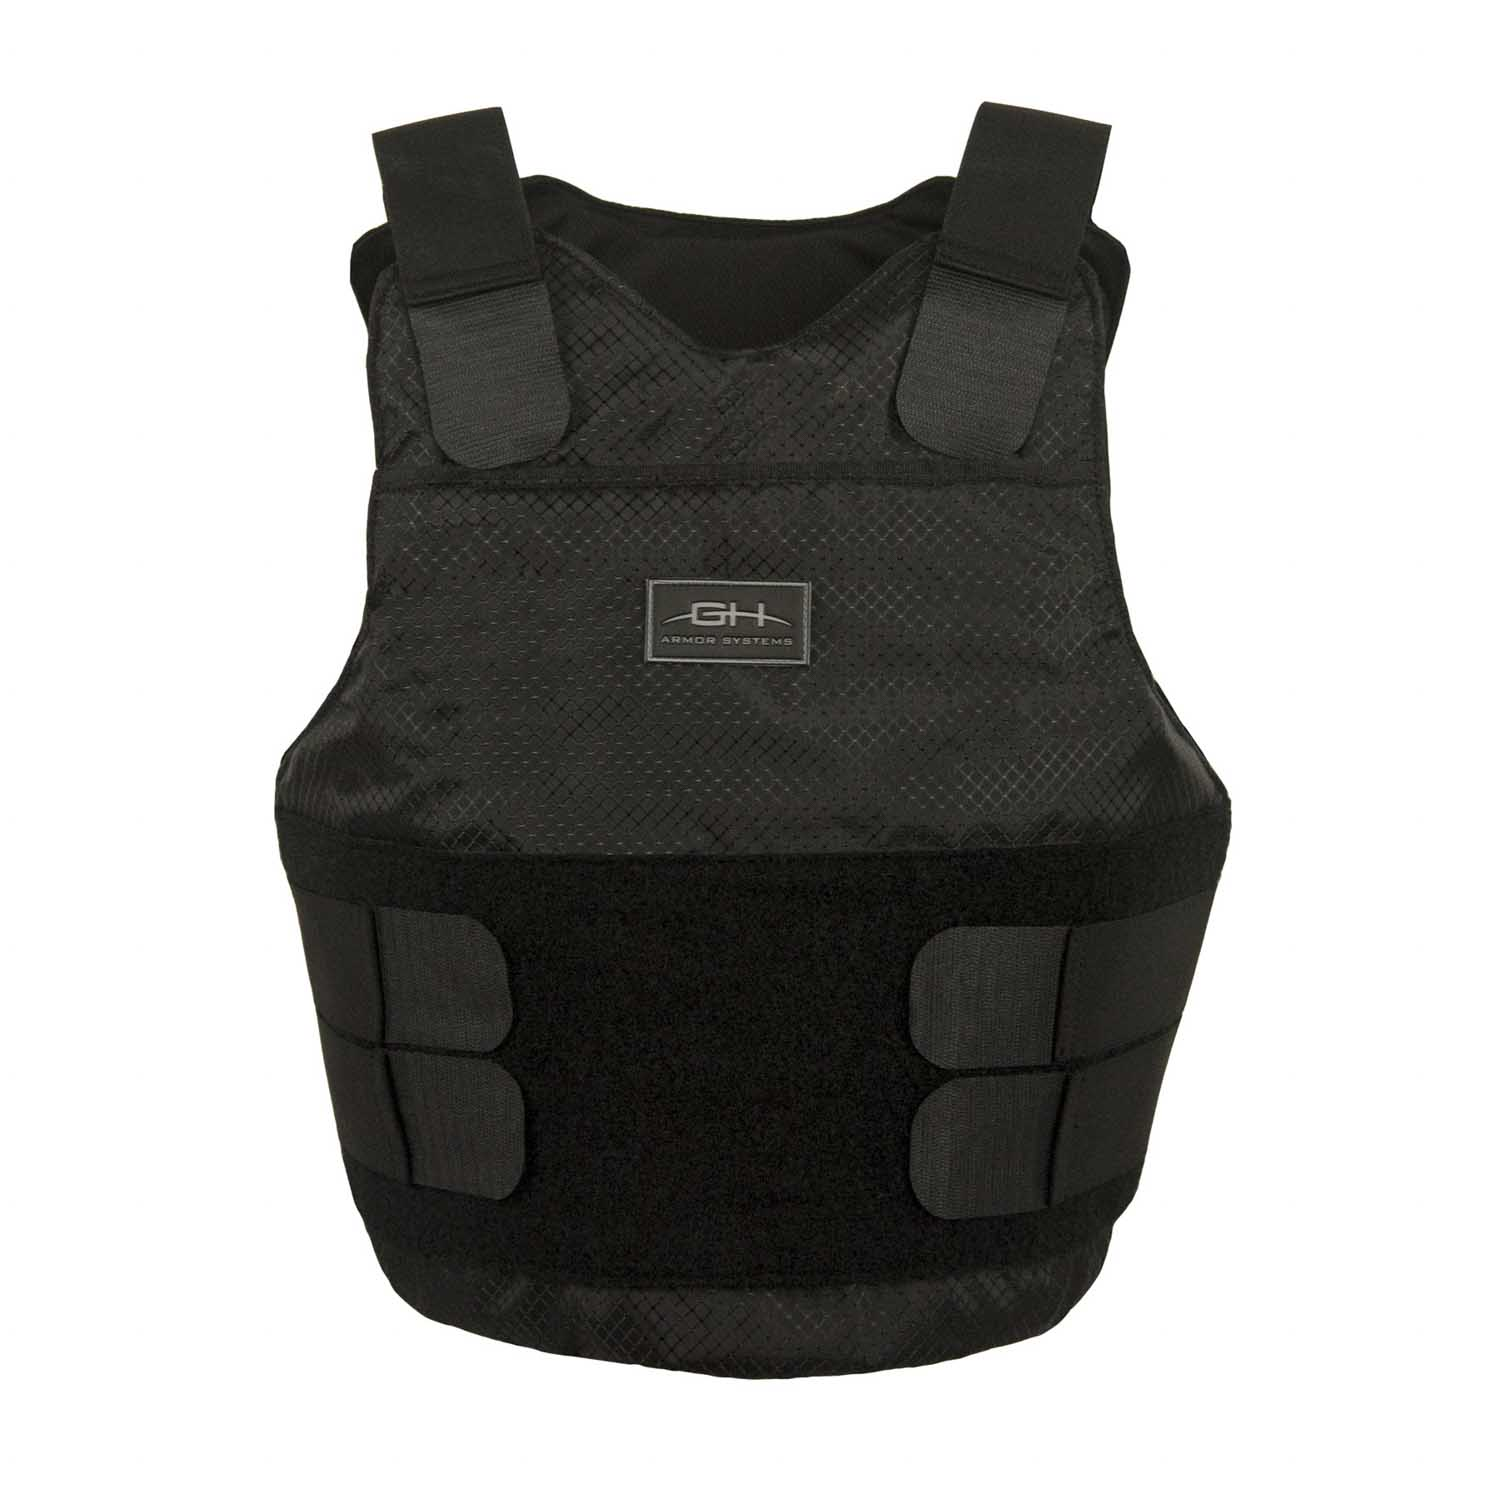 GH Armor ProX Body Armor Package Level IIIA